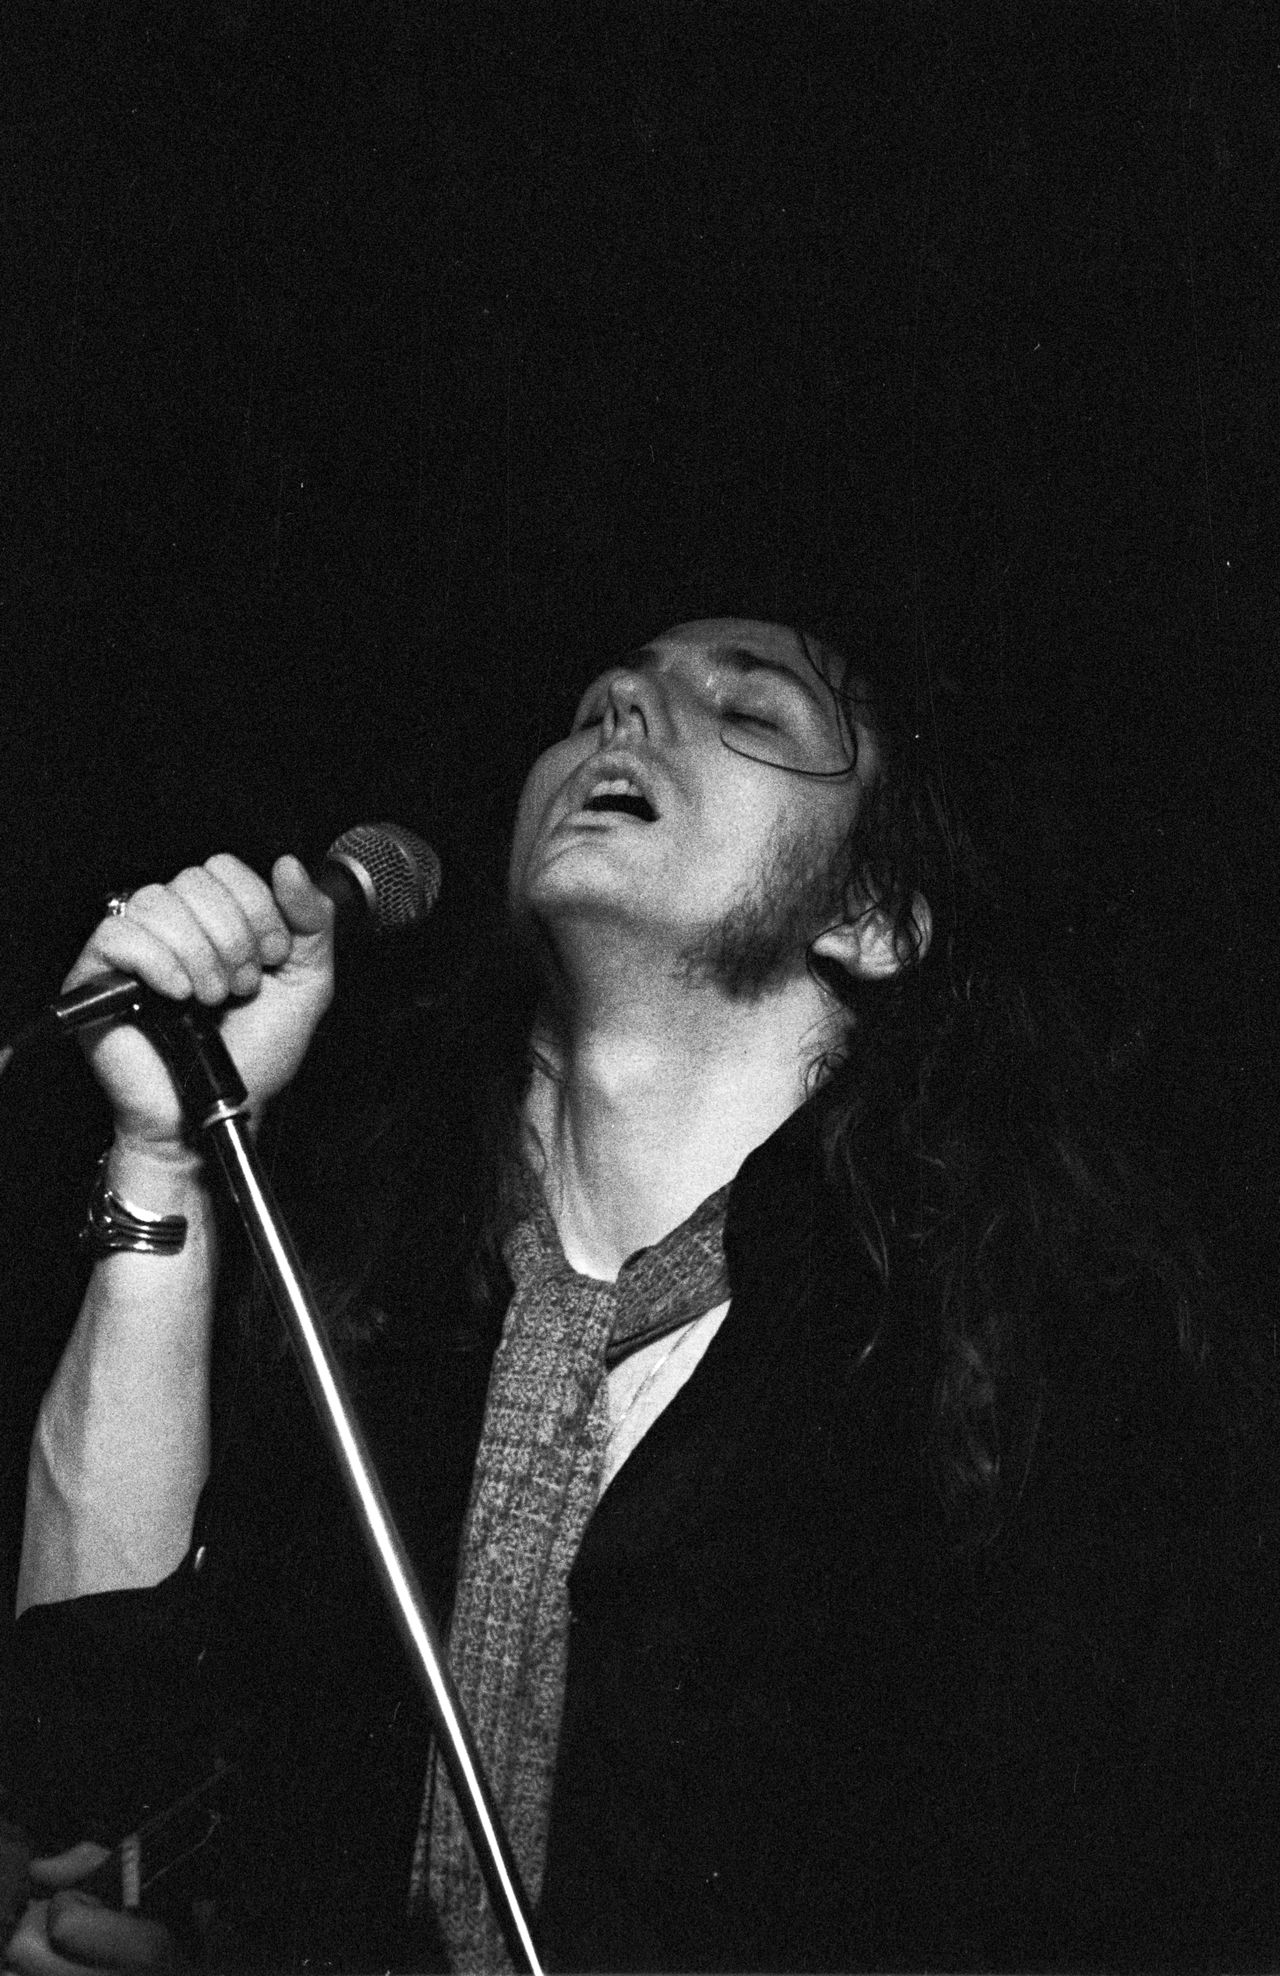 David Coverdale of Whitesnake at Lincoln College Of Technology March 3rd 1978 Blackandwhite Blues Jam Concert Photography Film Hp5 Ilford Live Music Microphone Music Rock Concert Rocknroll